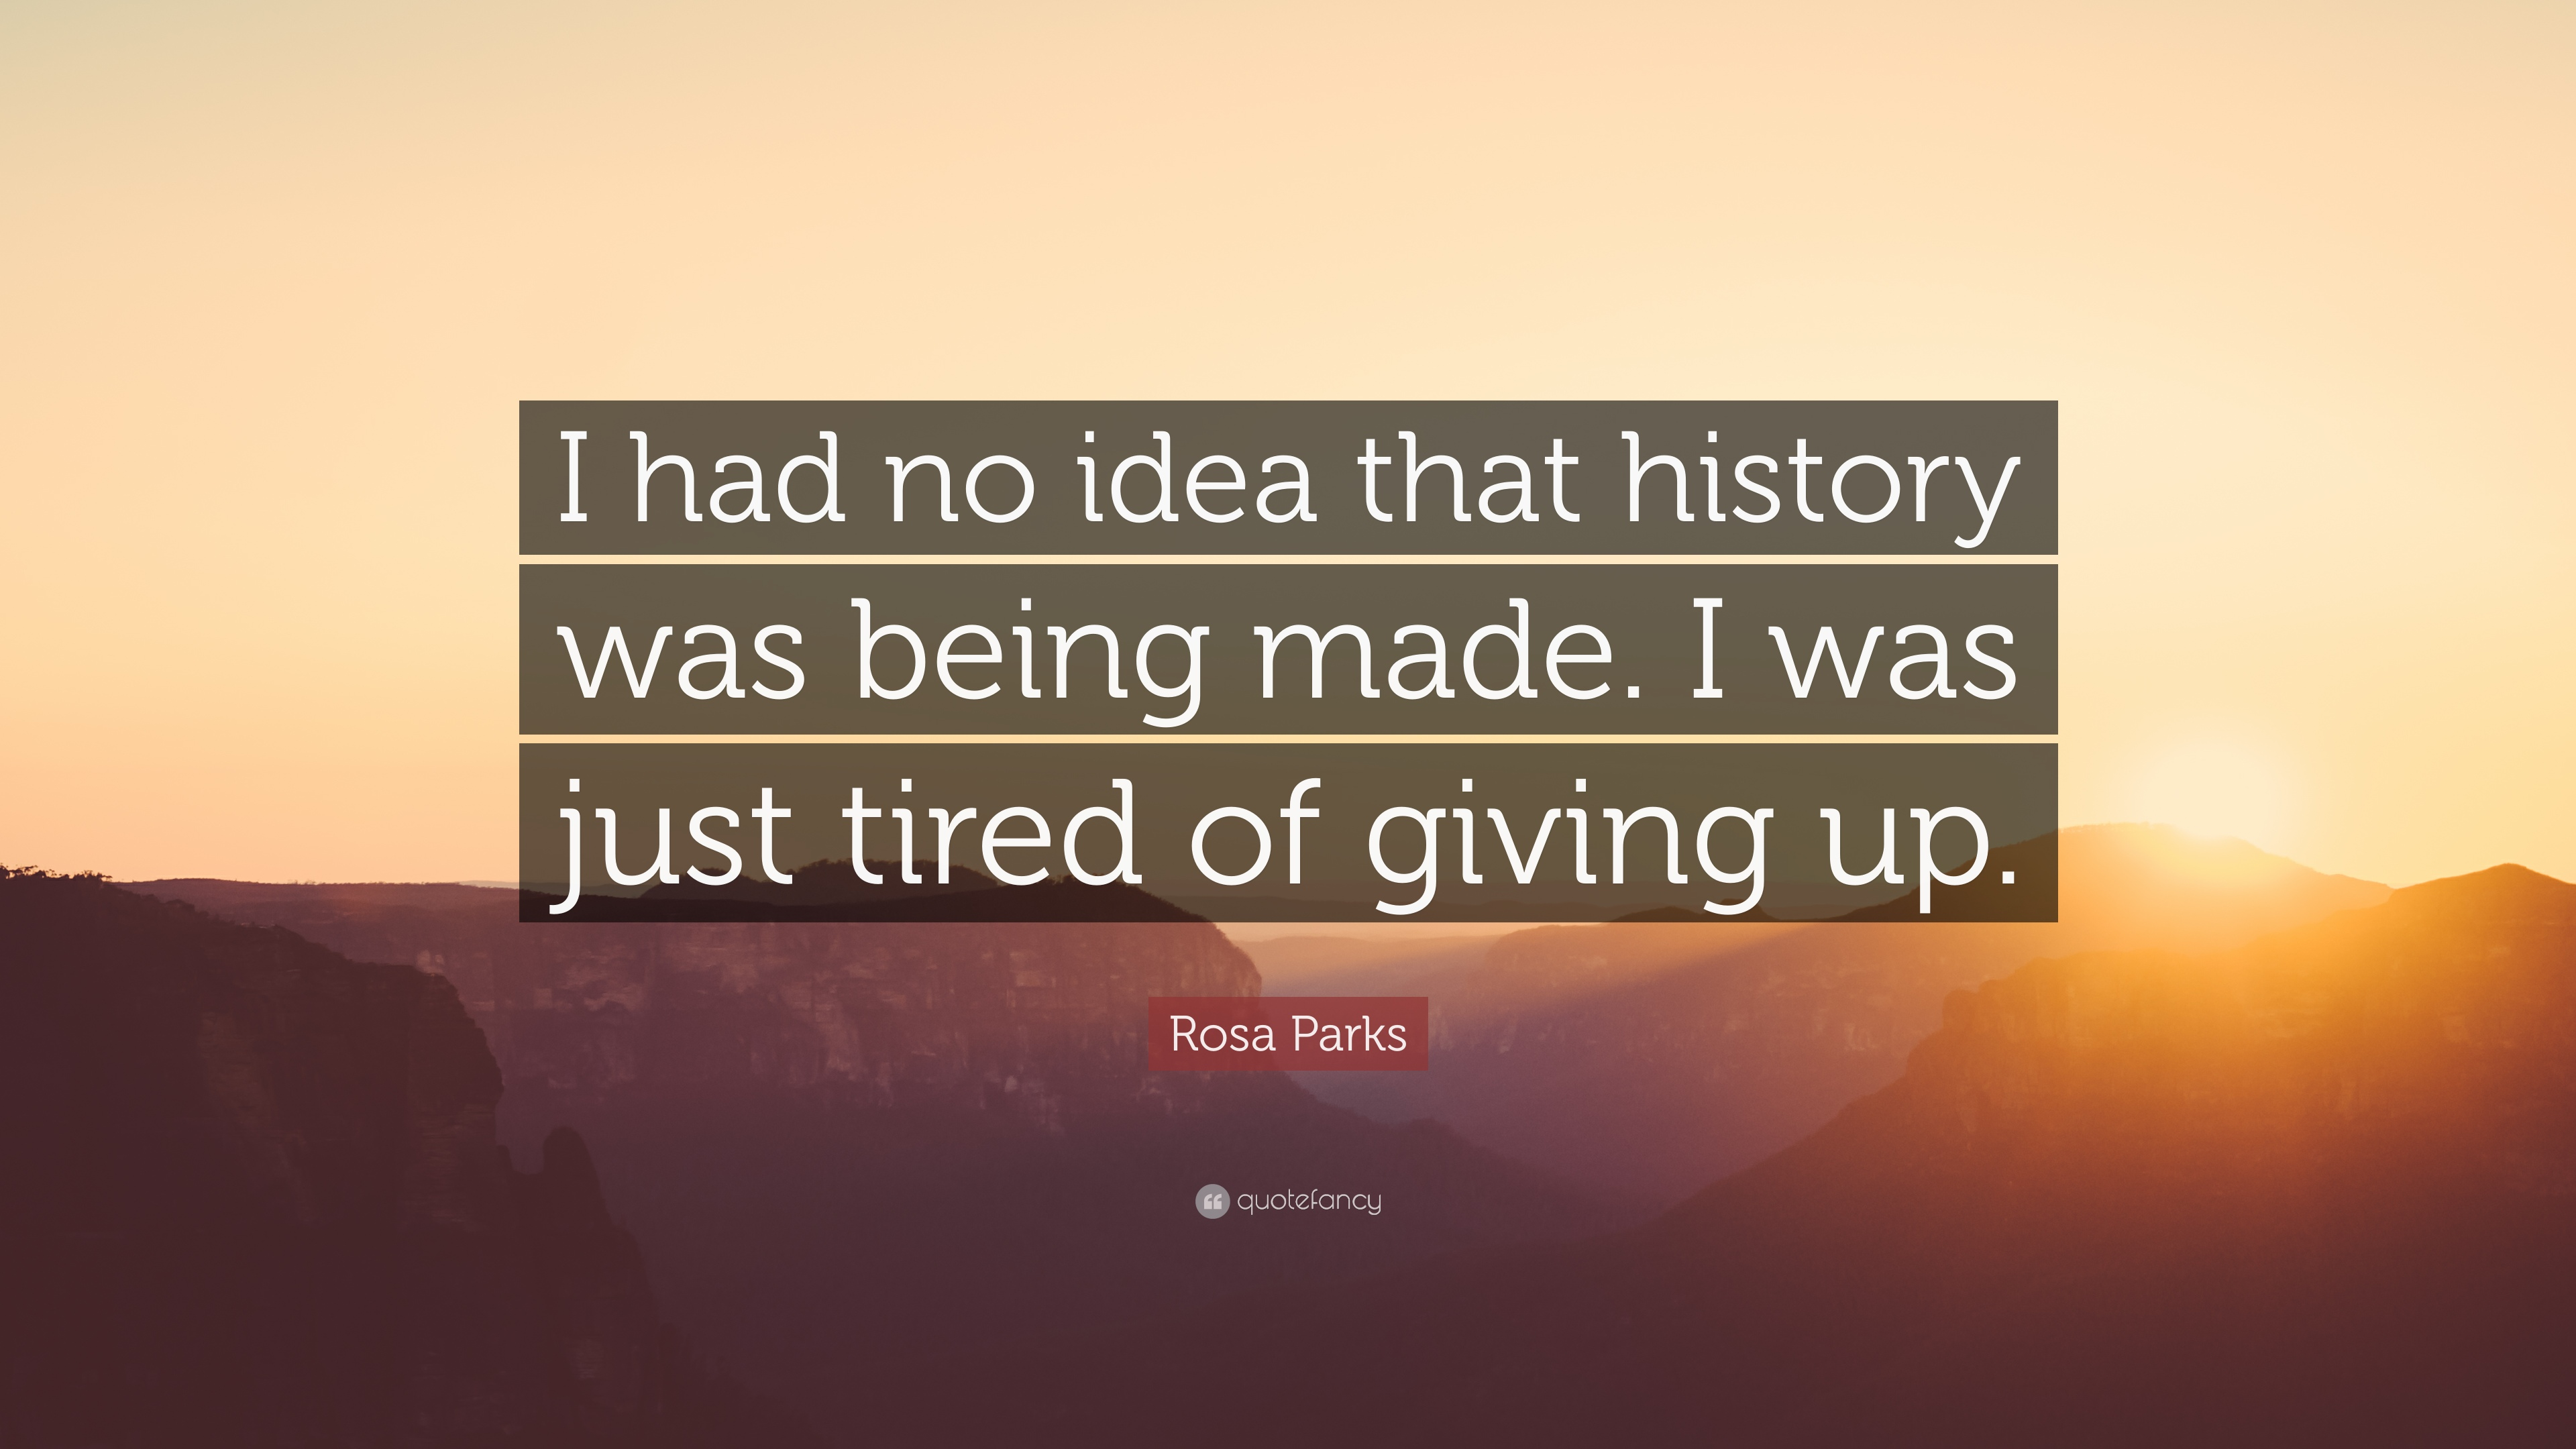 Rosa Parks Quotes | Rosa Parks Quote I Had No Idea That History Was Being Made I Was